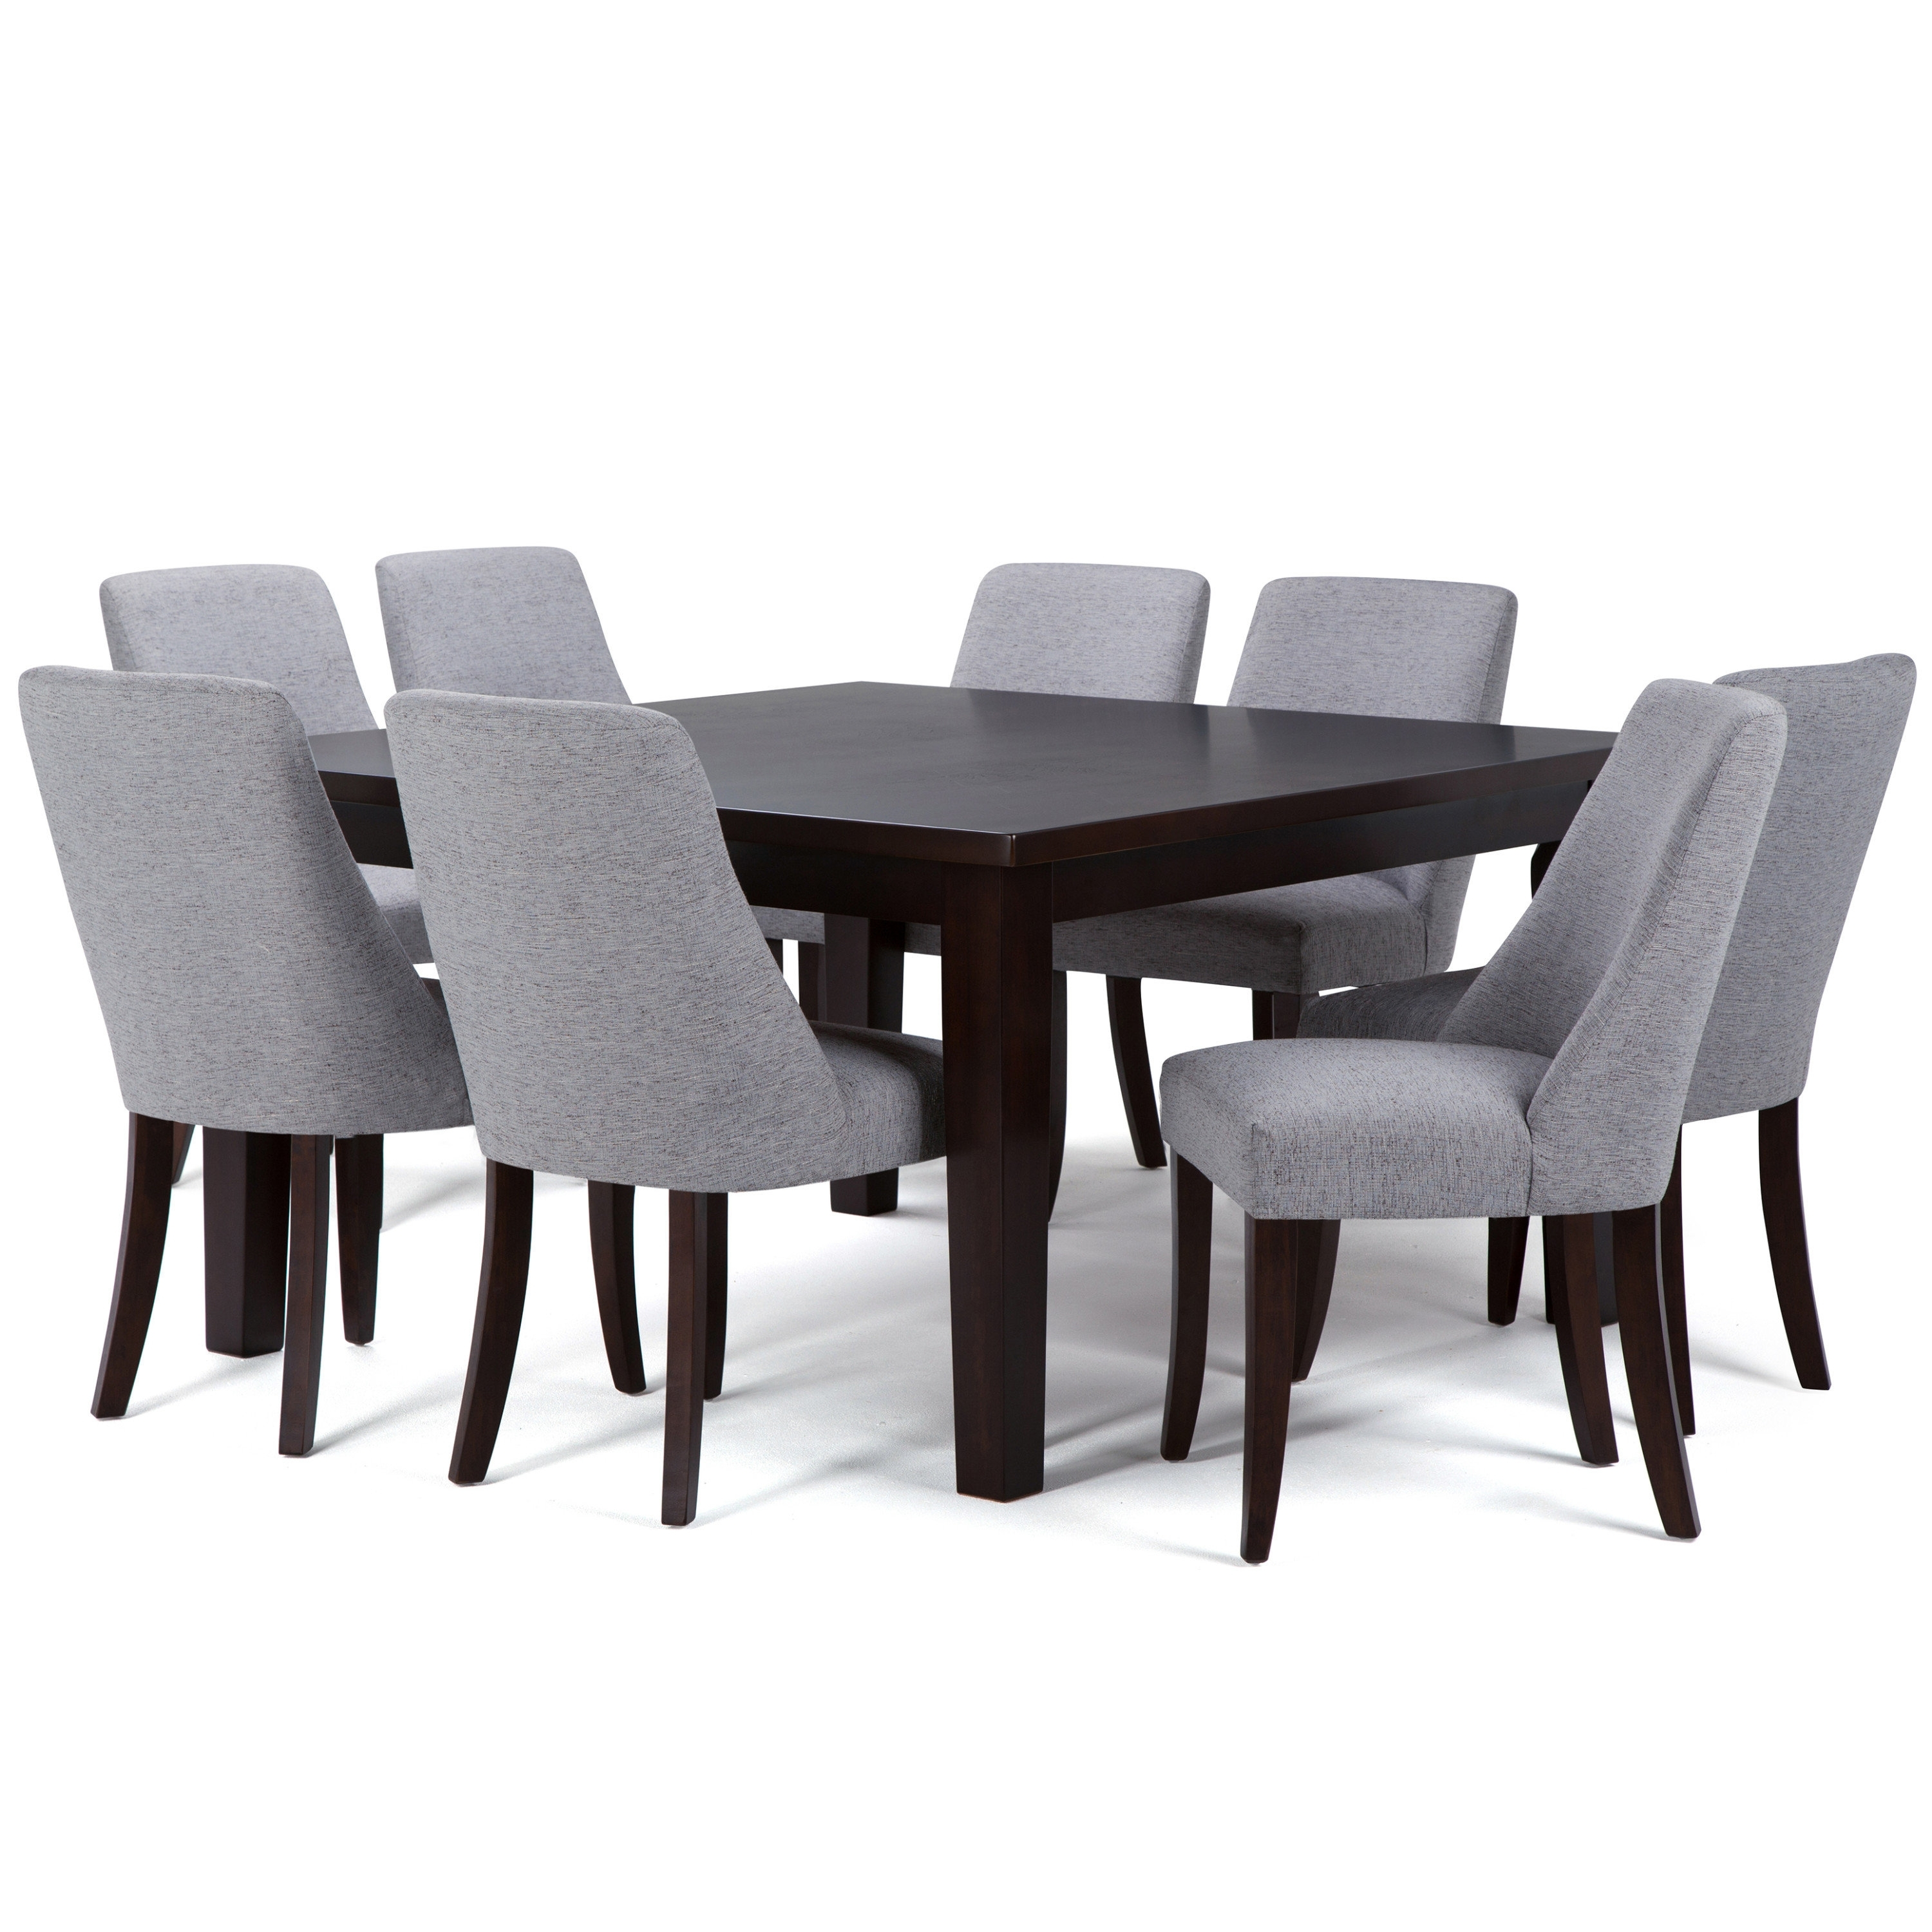 Simpli Home Walden 9 Piece Solid Wood Dining Set | Wayfair With Regard To 2017 Walden 7 Piece Extension Dining Sets (Image 16 of 20)